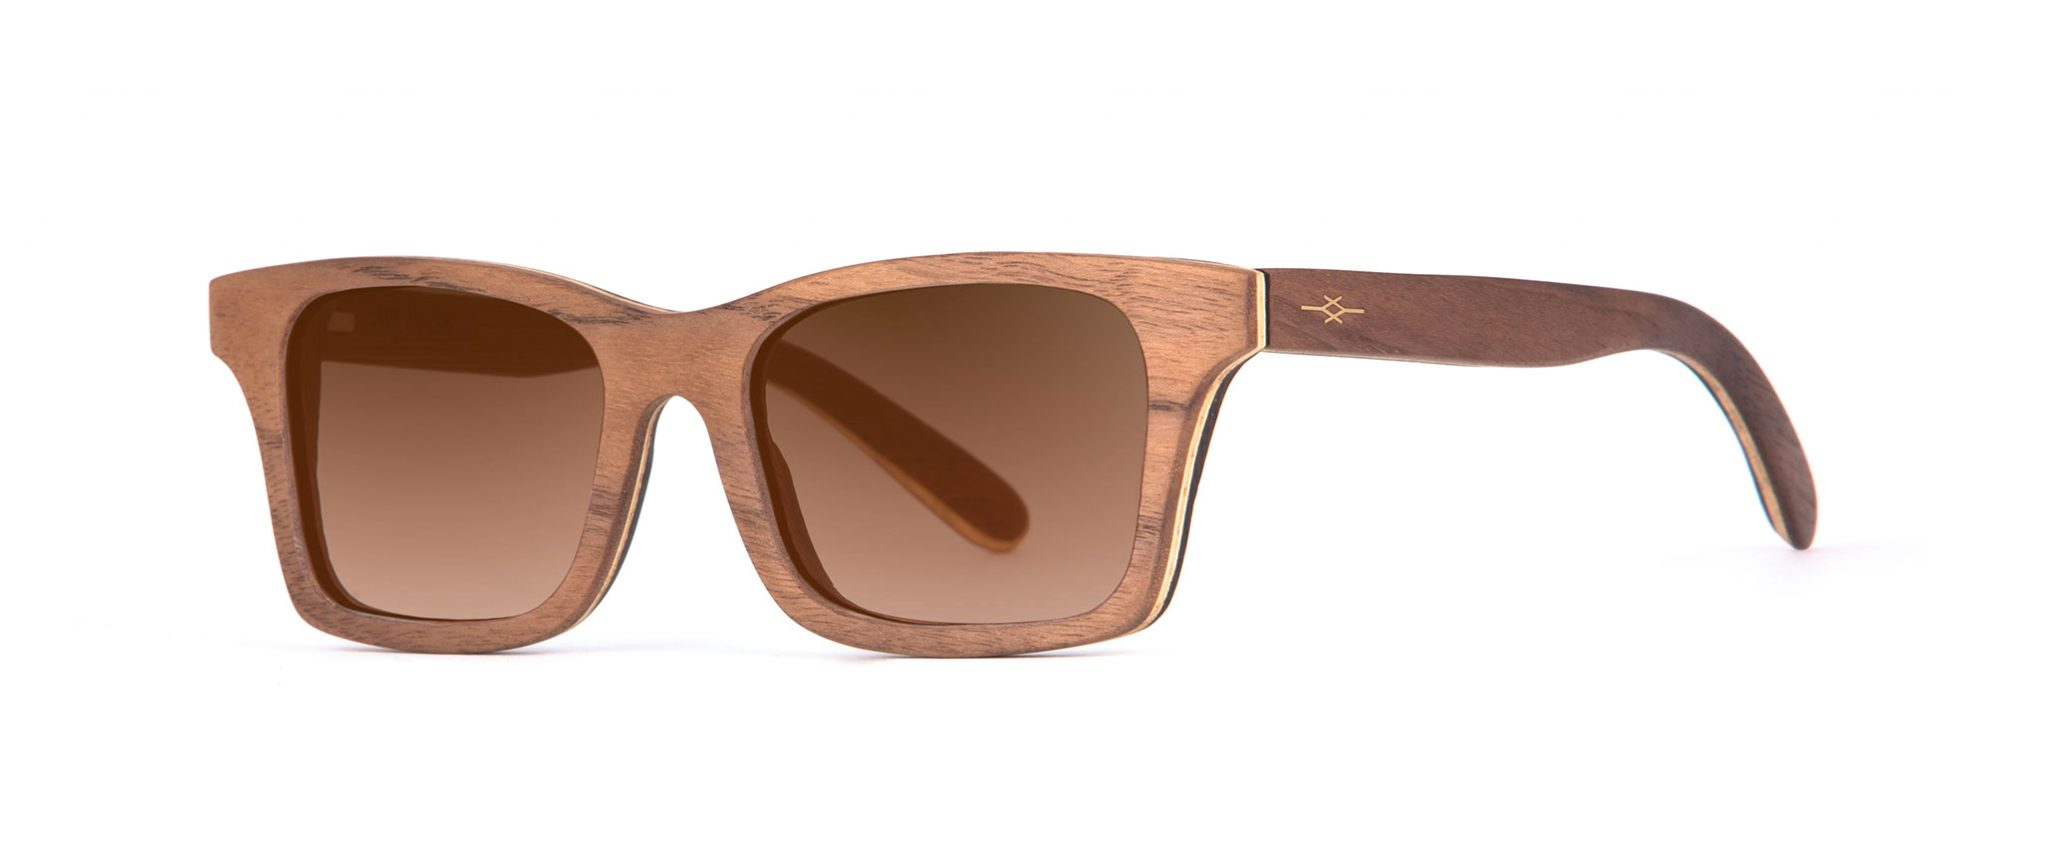 Mr Miles Walnut Iconic Designer Sunglasses